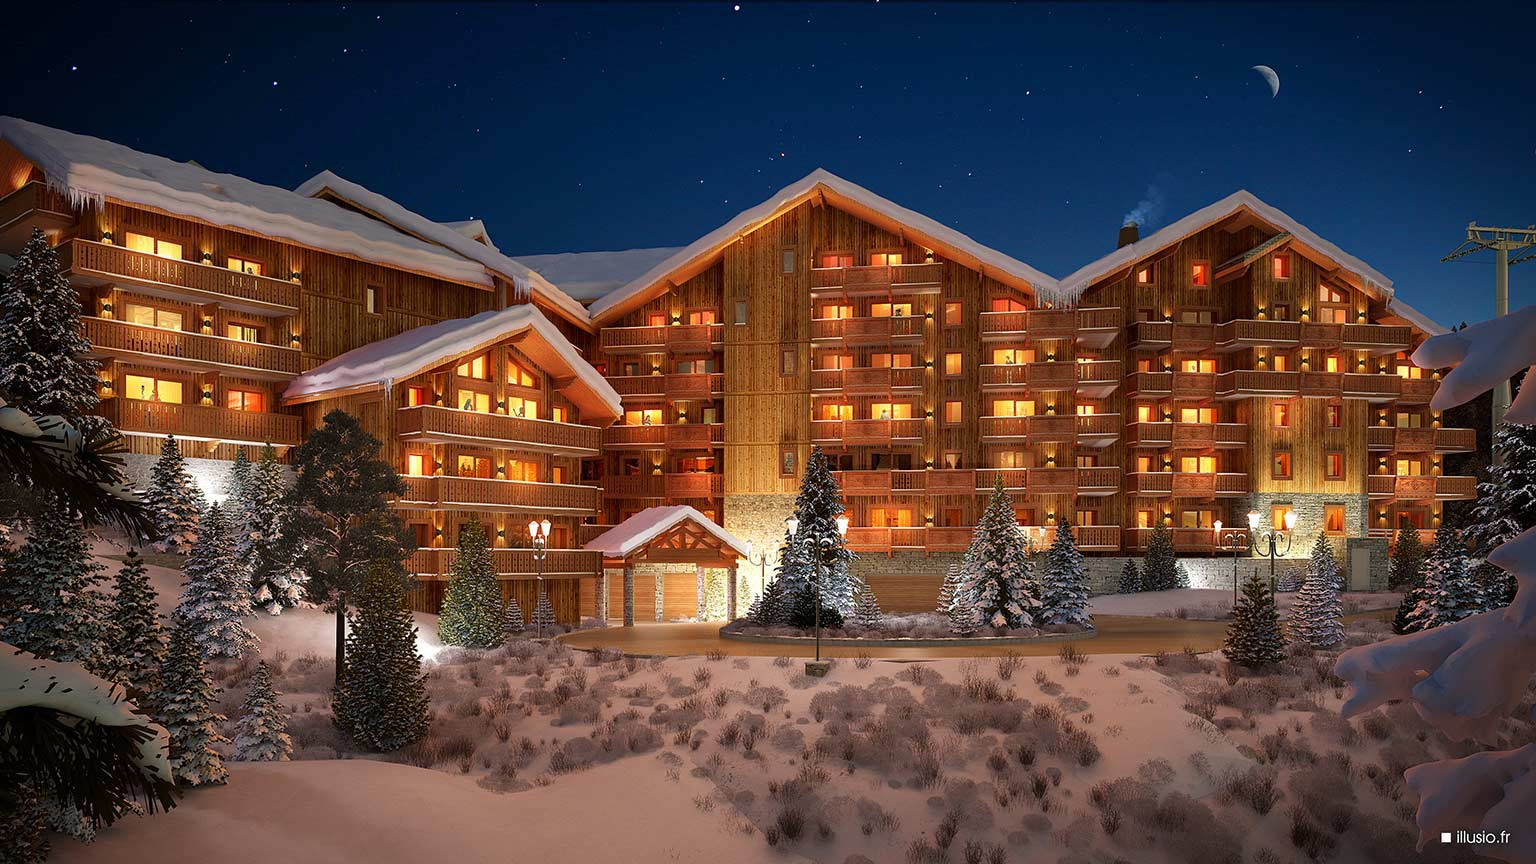 Residence L'Hevana, Meribel - Night